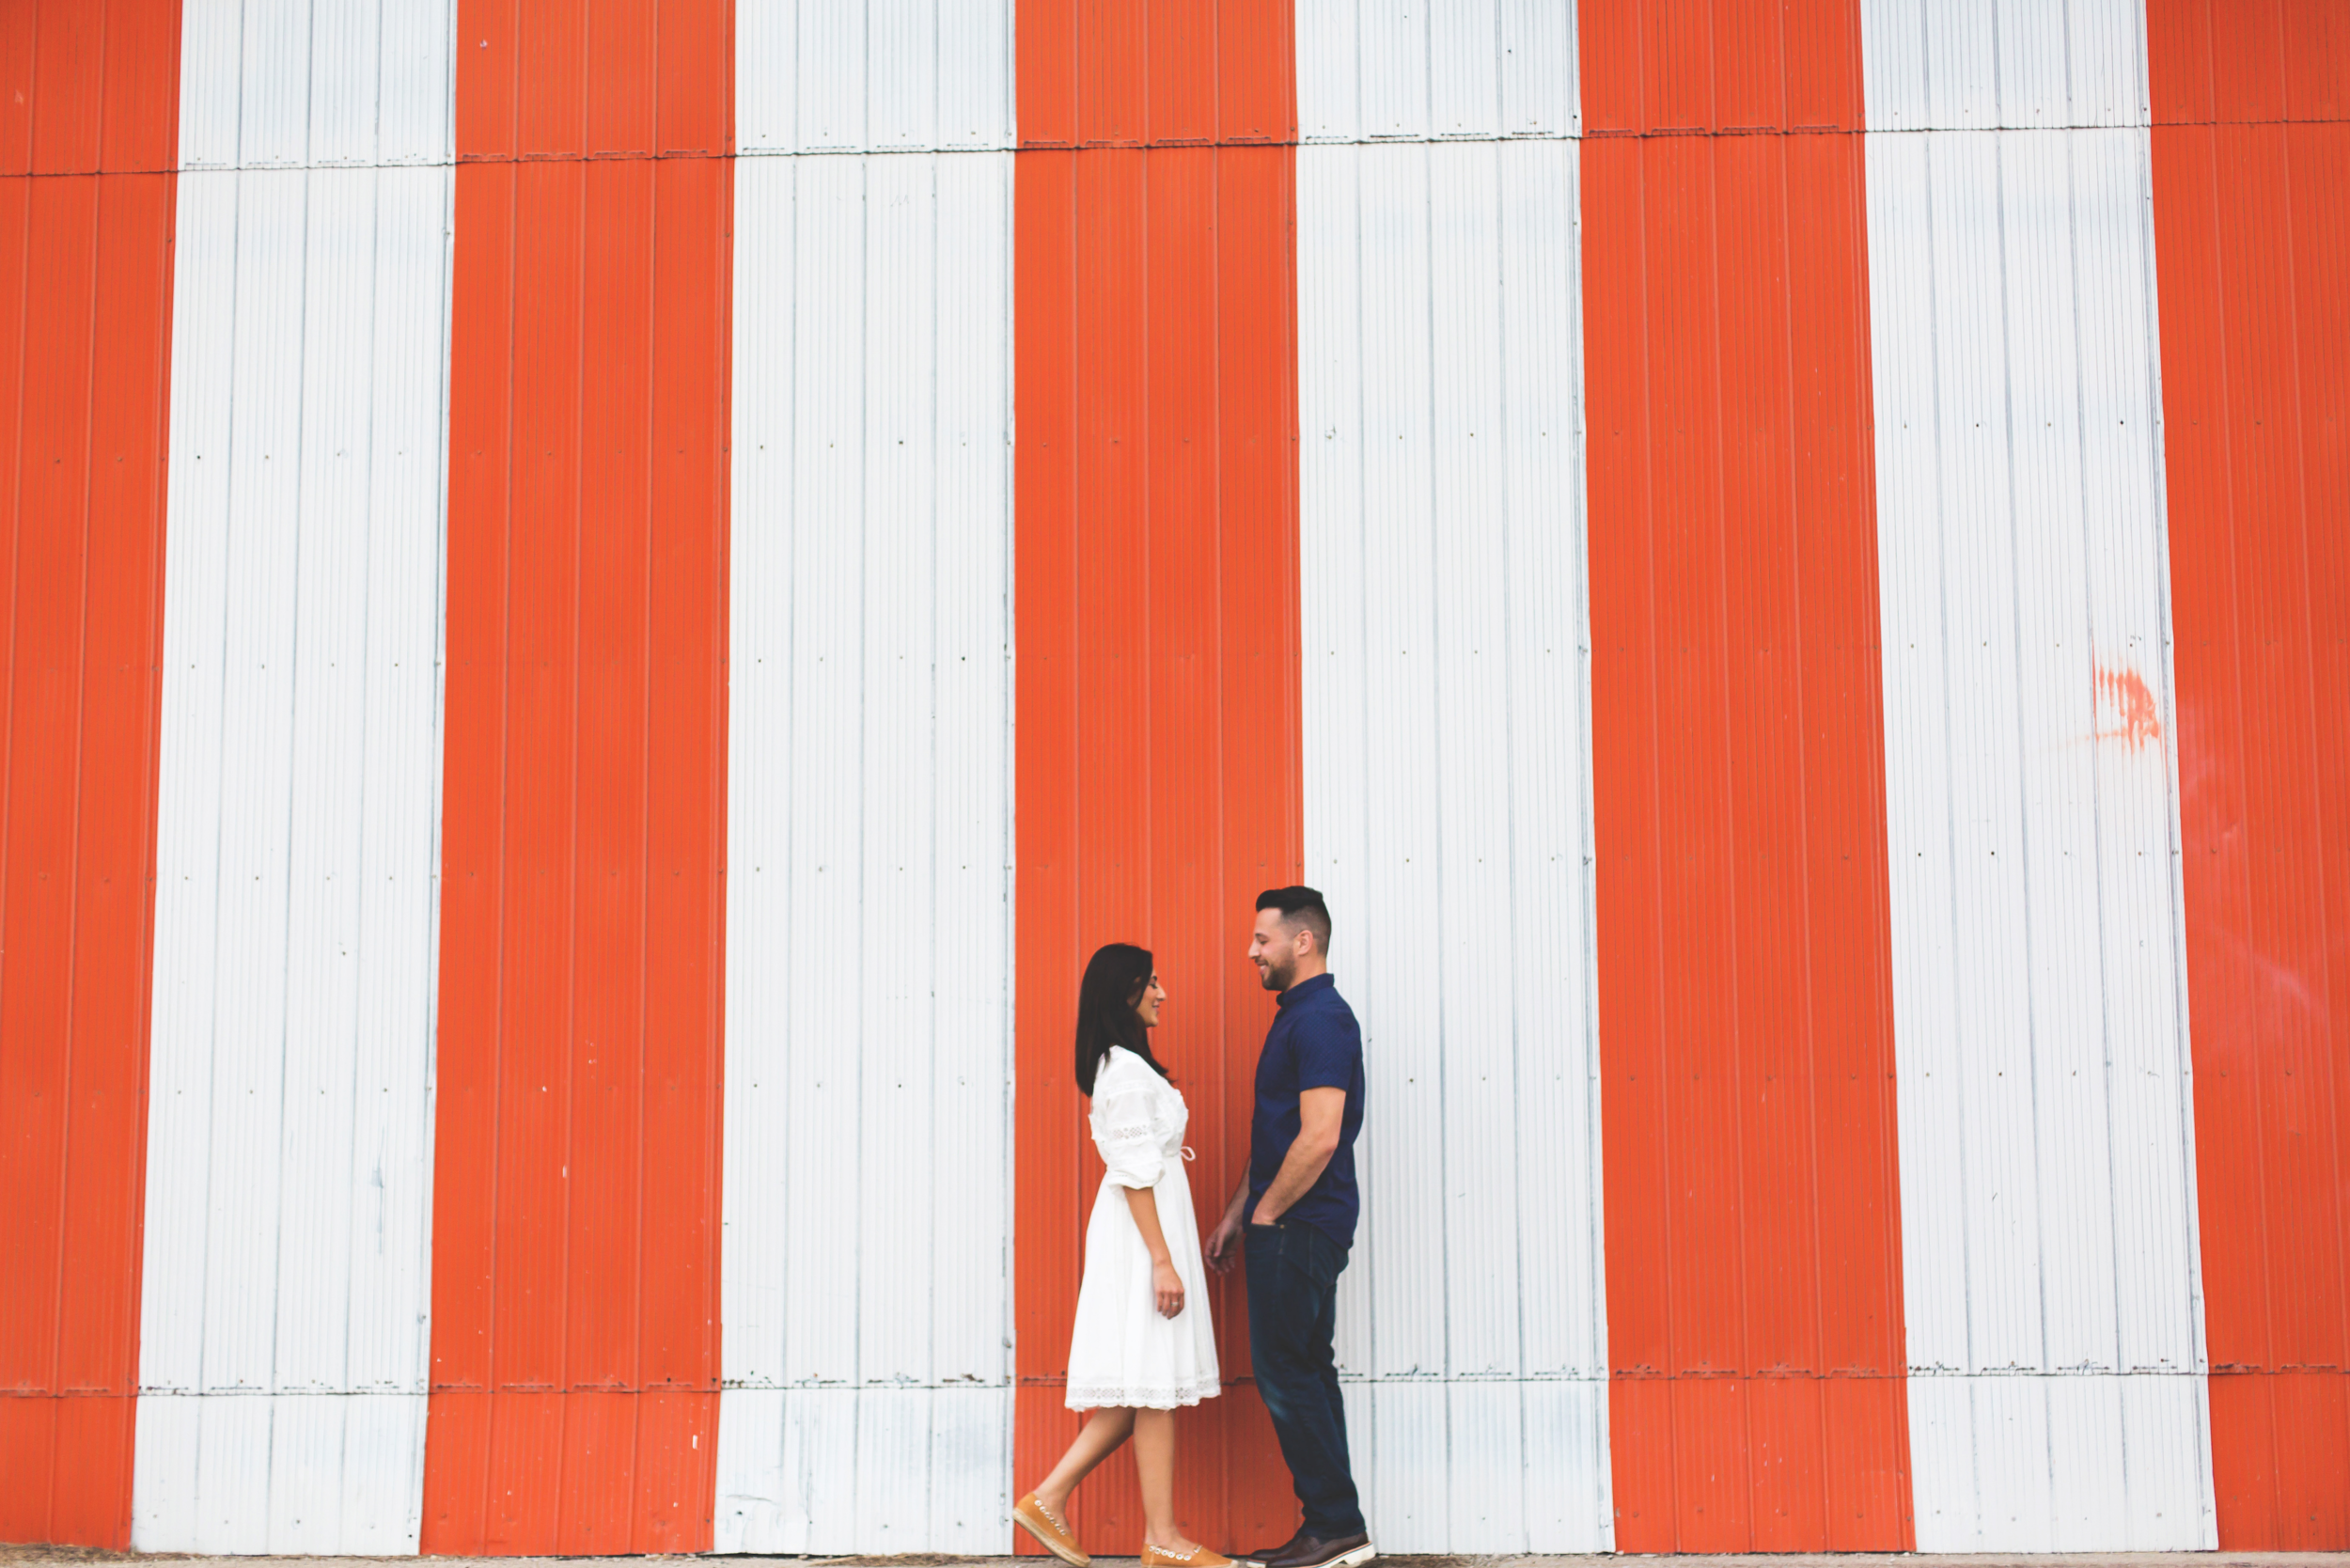 Engagement-Session-Hamilton-Burlington-Oakville-Toronto-Niagara-Wedding-Photographer-Engaged-Photography-Brantford-Airport-HamOnt-Engaged-Moments-by-Lauren-Photo-Image-15.png